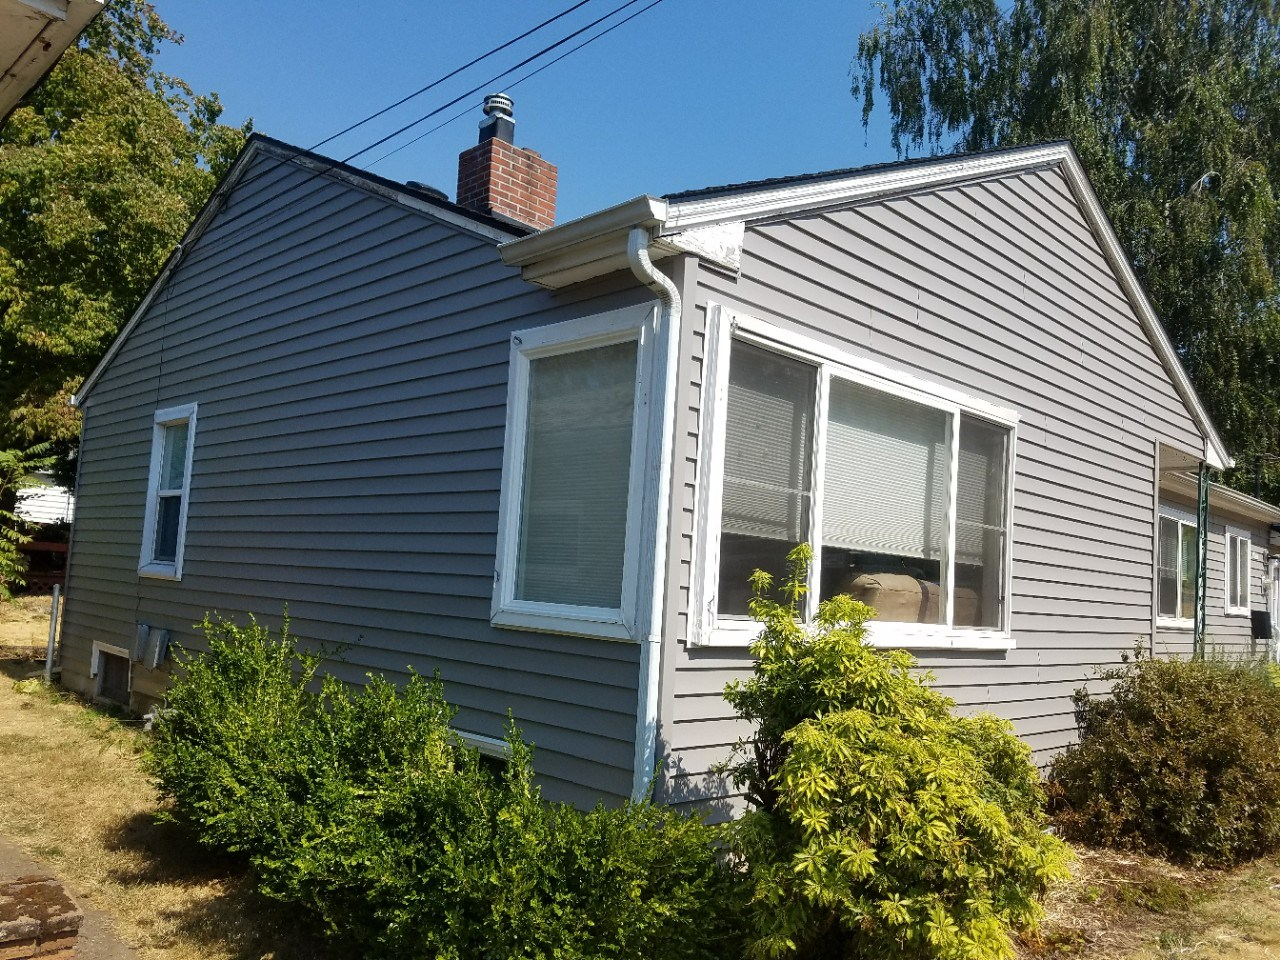 vinyl siding completed by Superior exterior systems